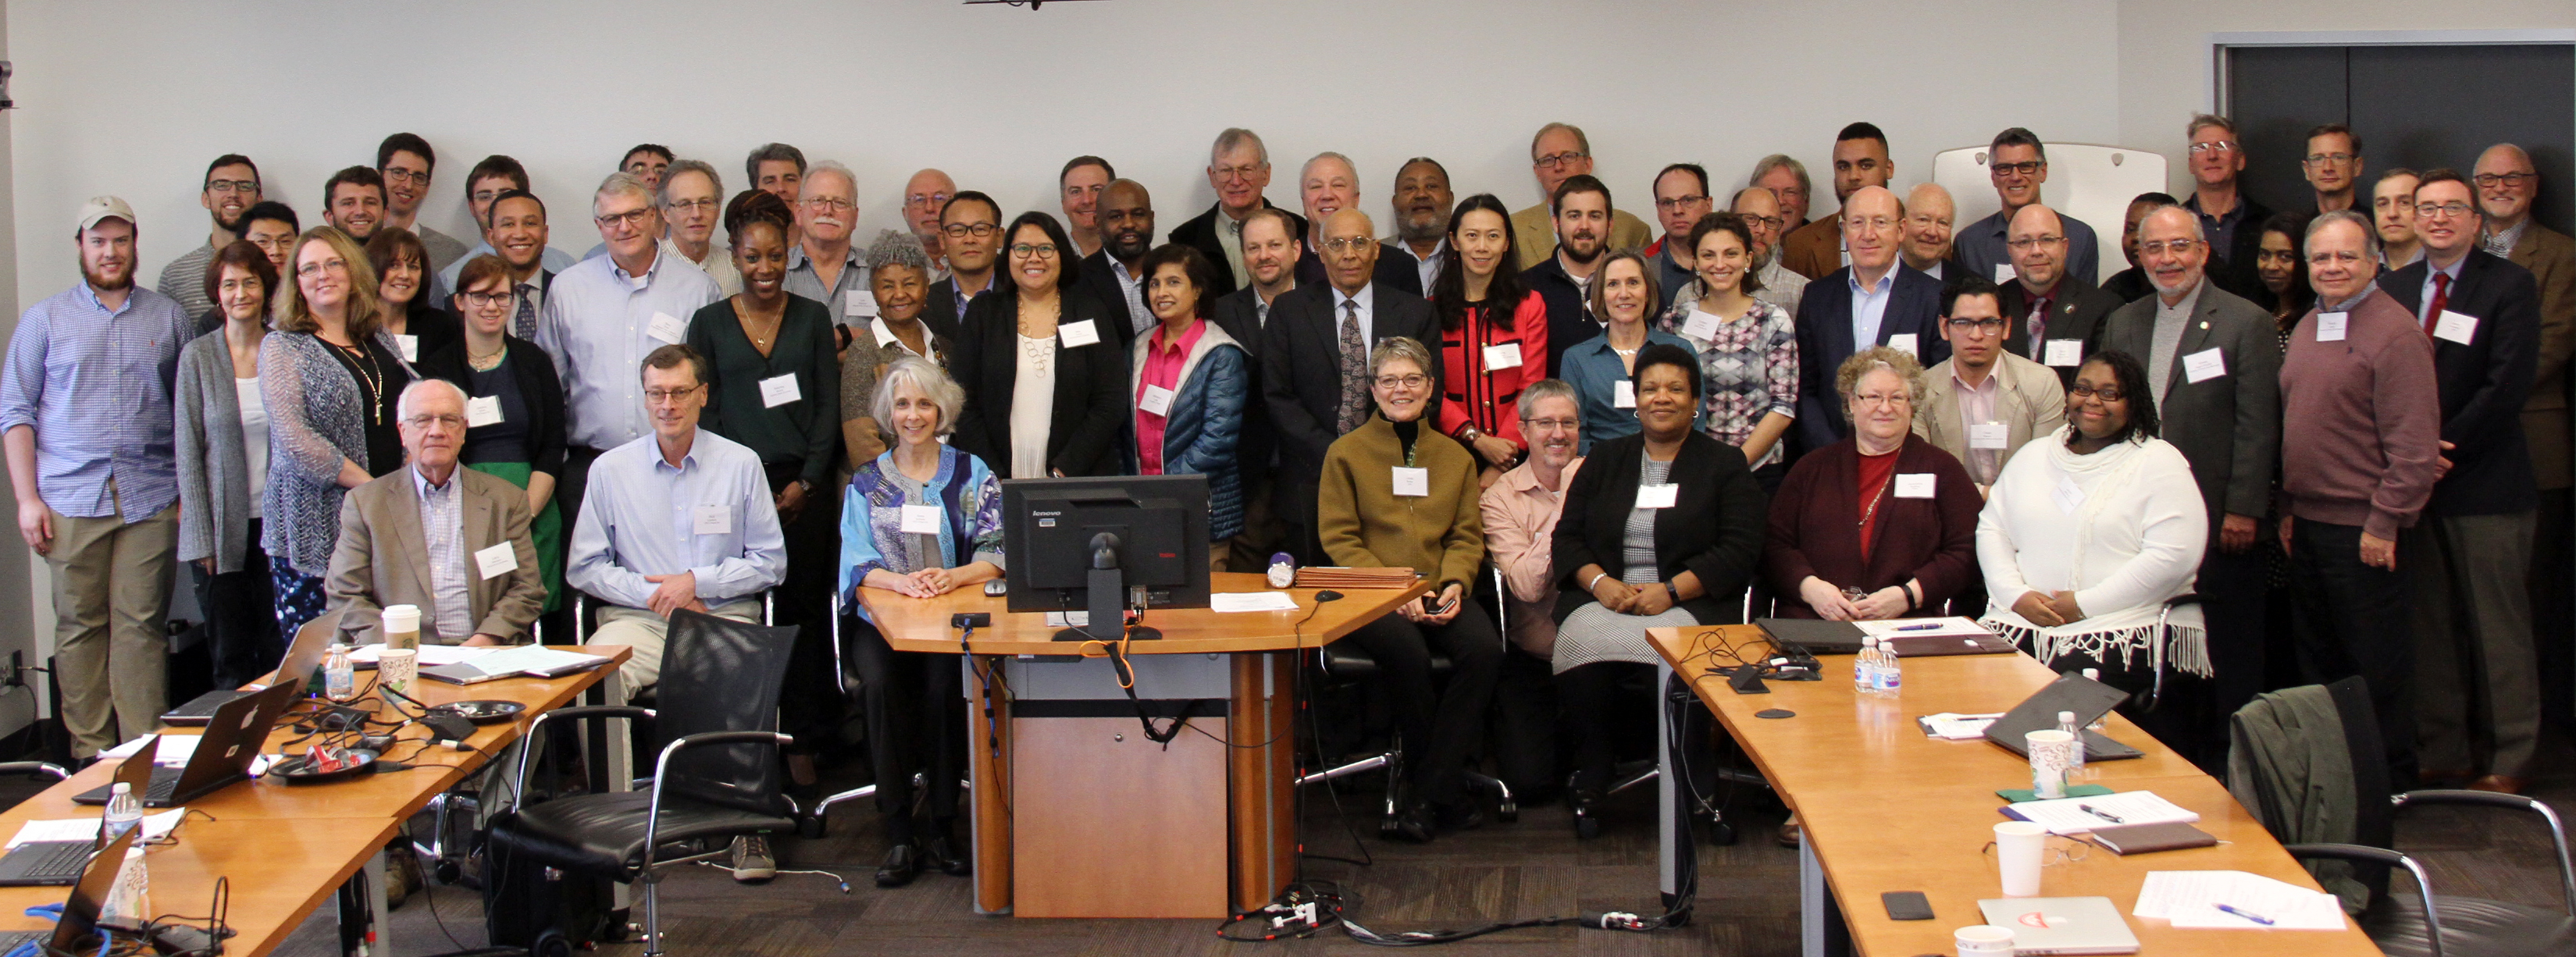 CRC staff, researchers, advisory board, federal reviewers and guests gathered for the 3rd PI meeting from Feb. 28-March 1, 2018.